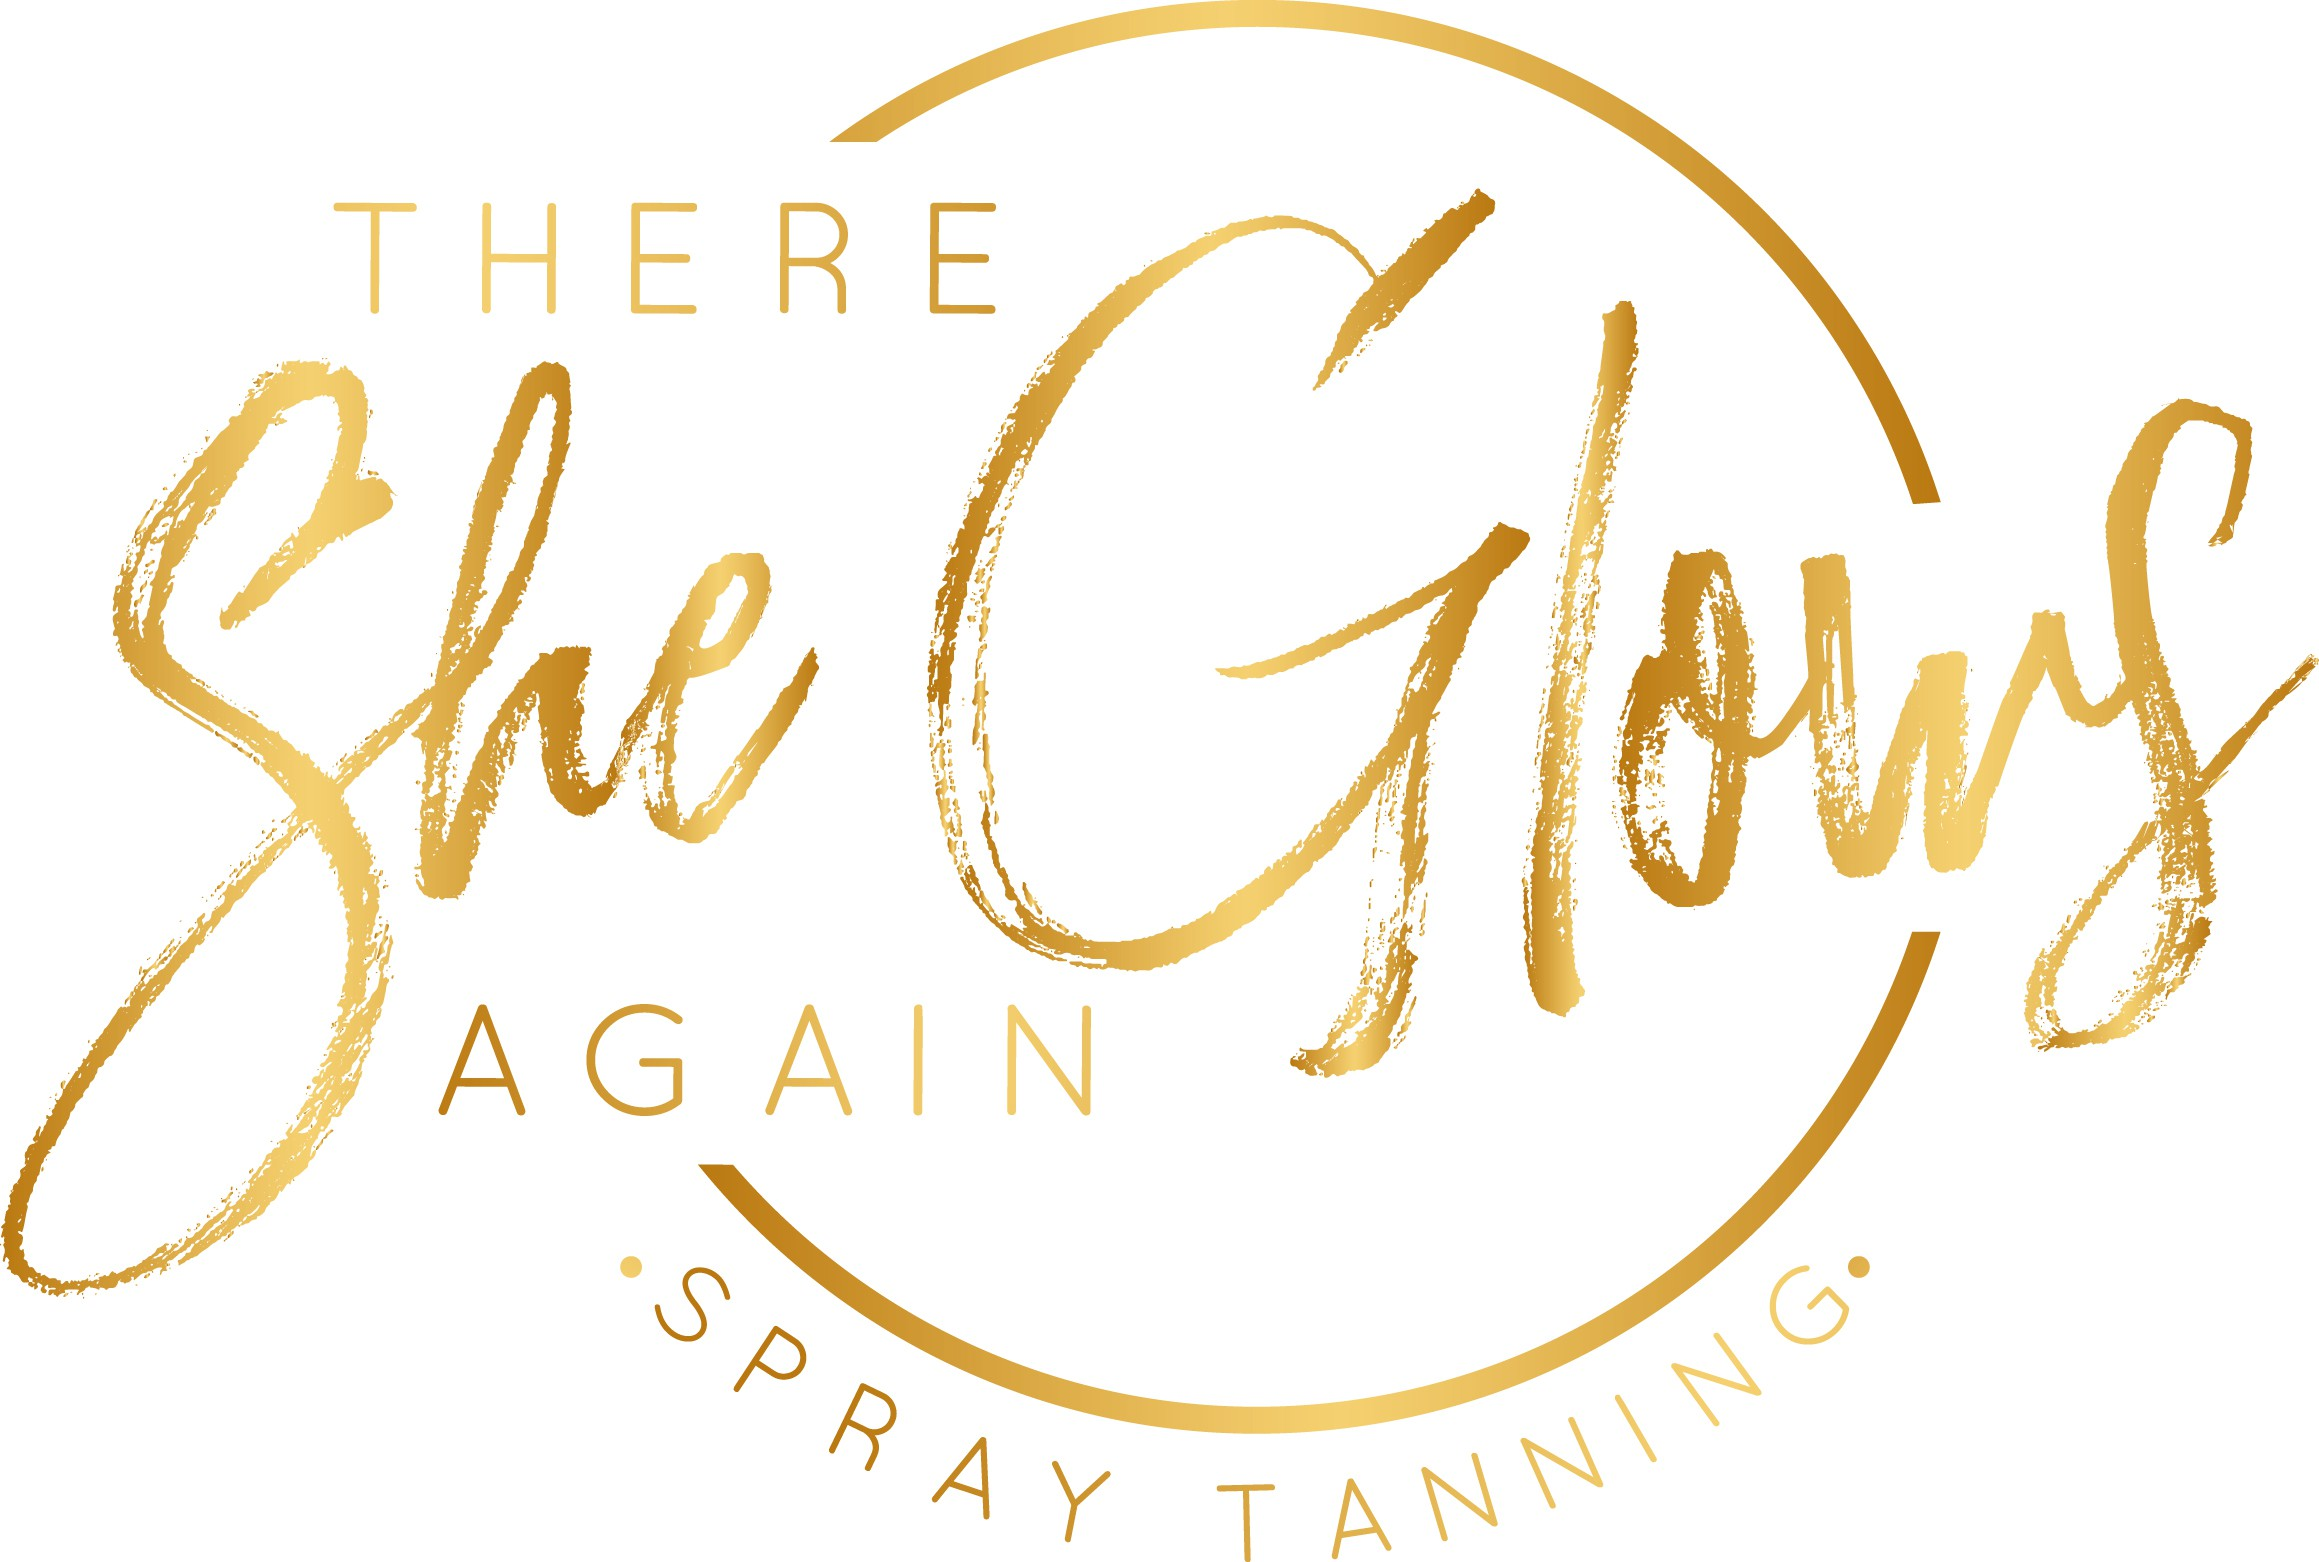 Spray tanning business needs exceptional standout logo!